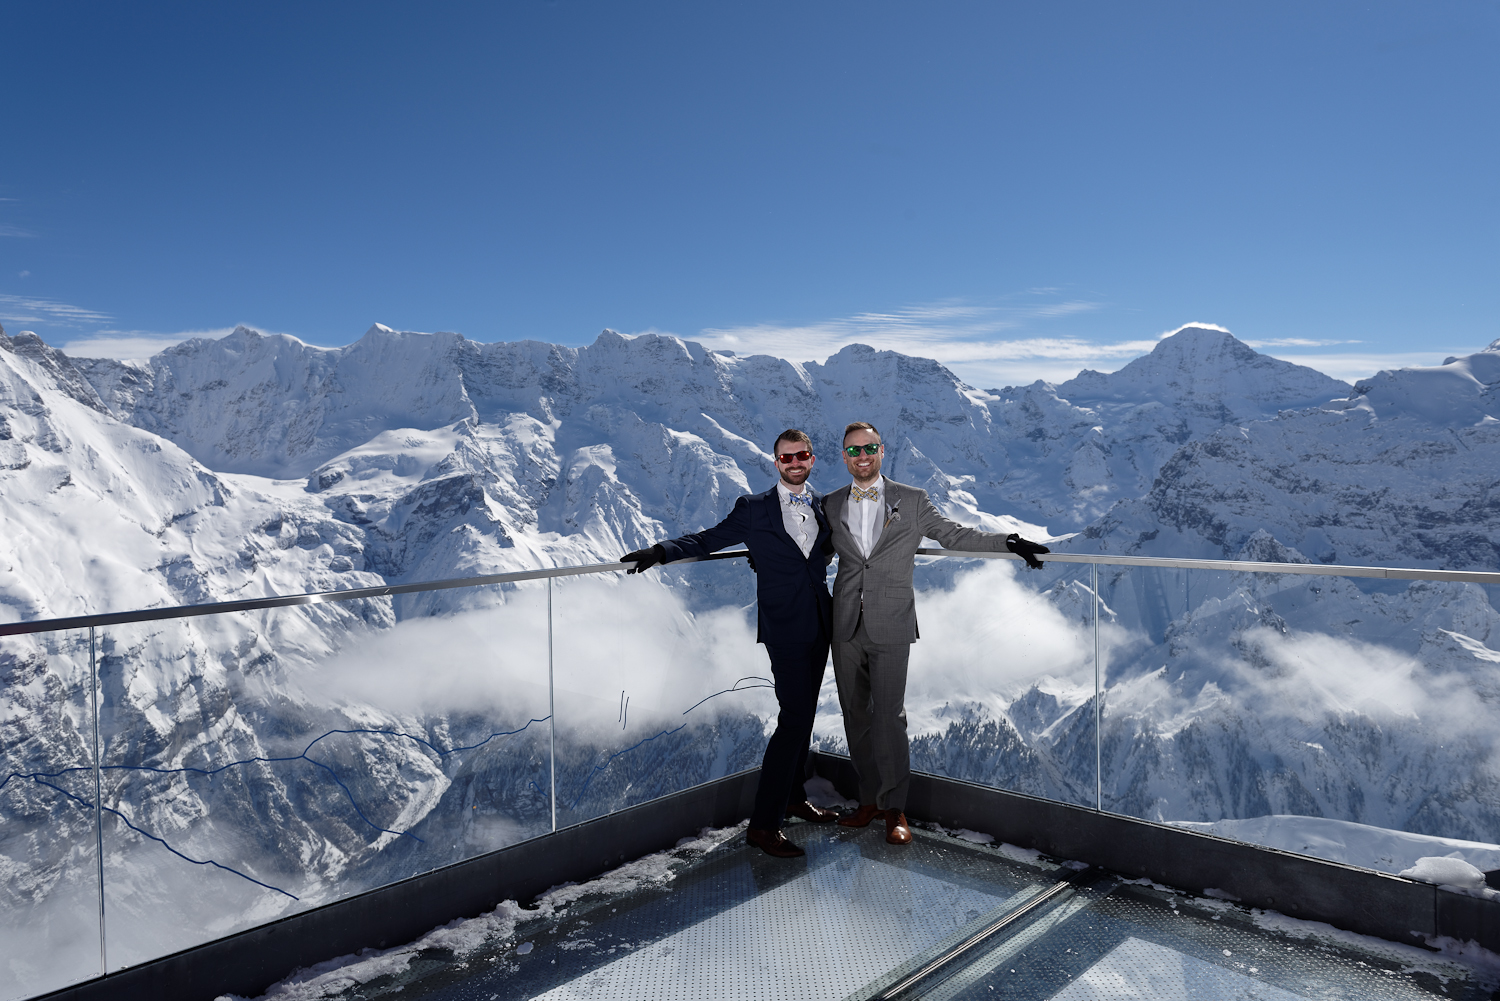 Schilthorn wedding organization Switzerland